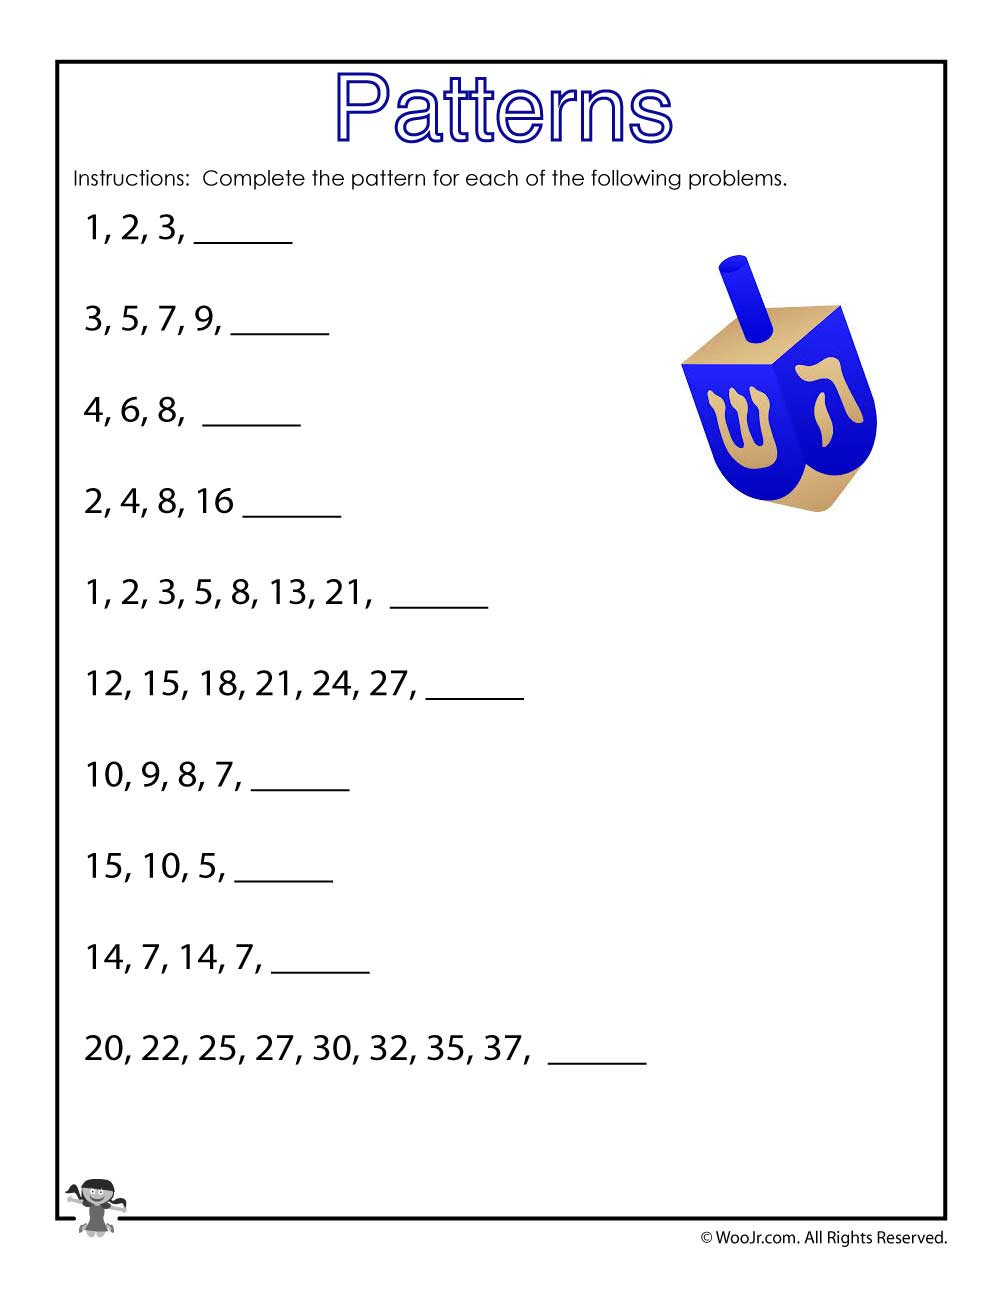 Number Patterns Worksheets Grade 6 Number Patterns Worksheet Hanukkah